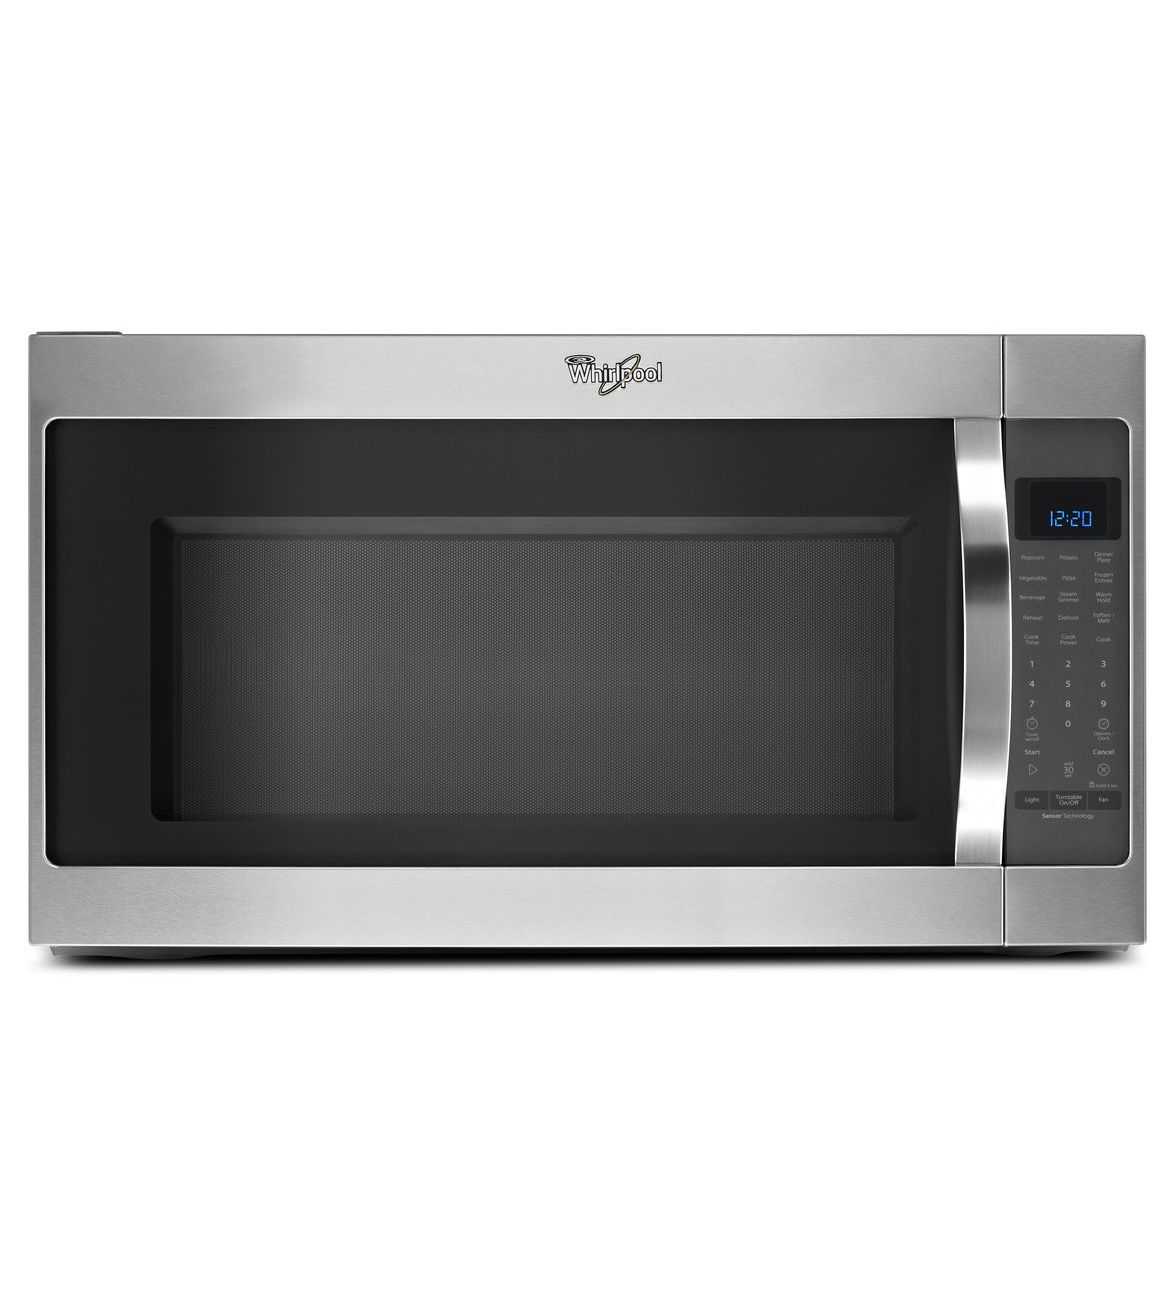 whirlpool steel microwave combo stainless countertop in oven built electric ovenmicro and